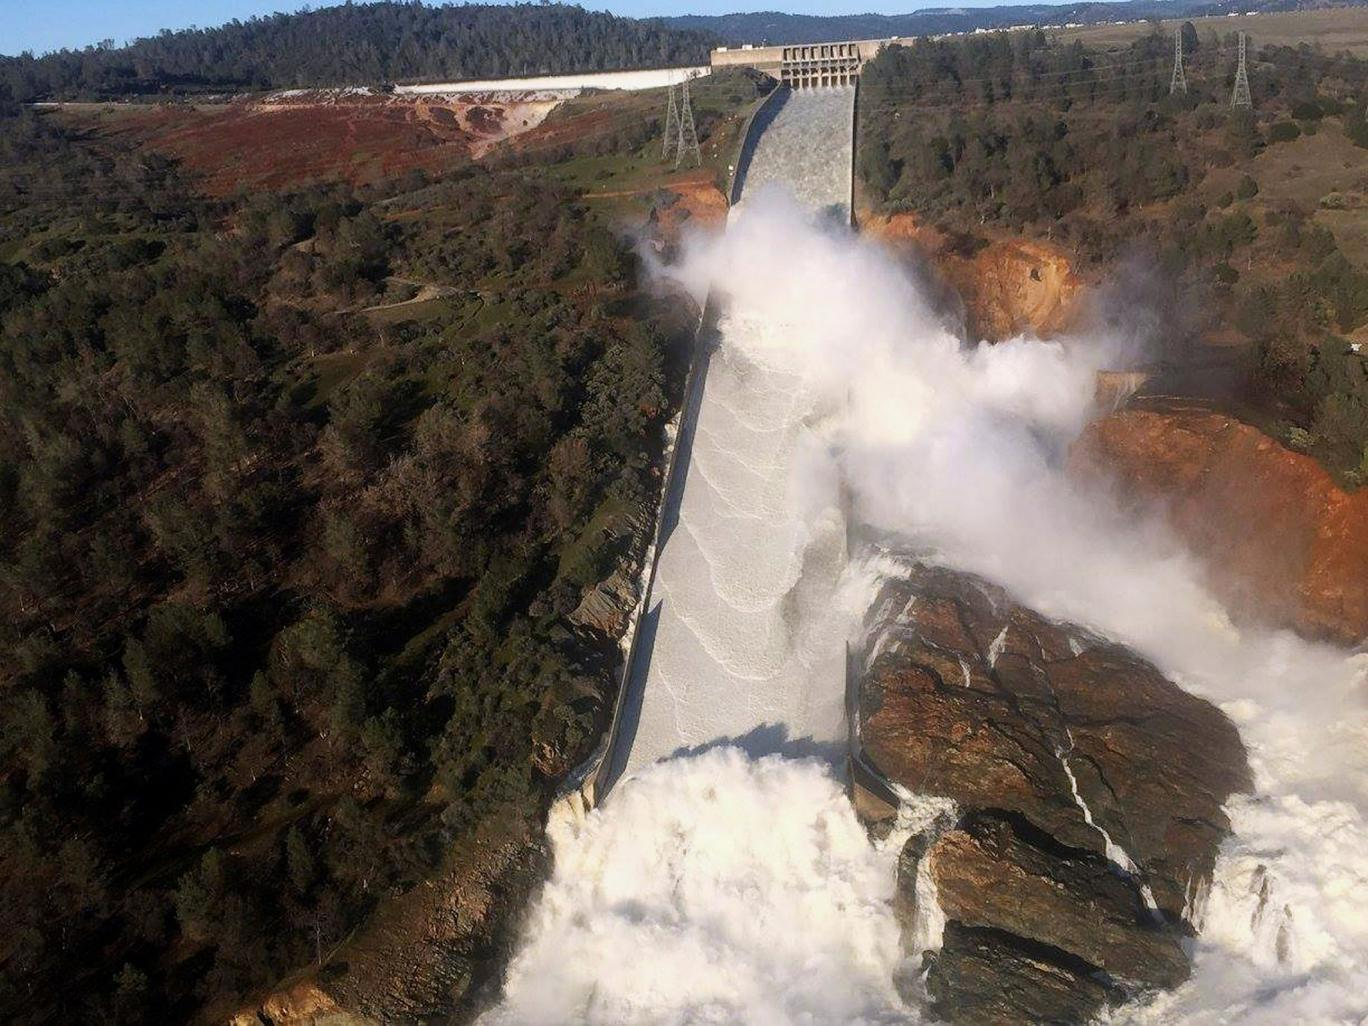 A dam in crisis: Thousands residents forced to flee from Oroville, Butte County, California